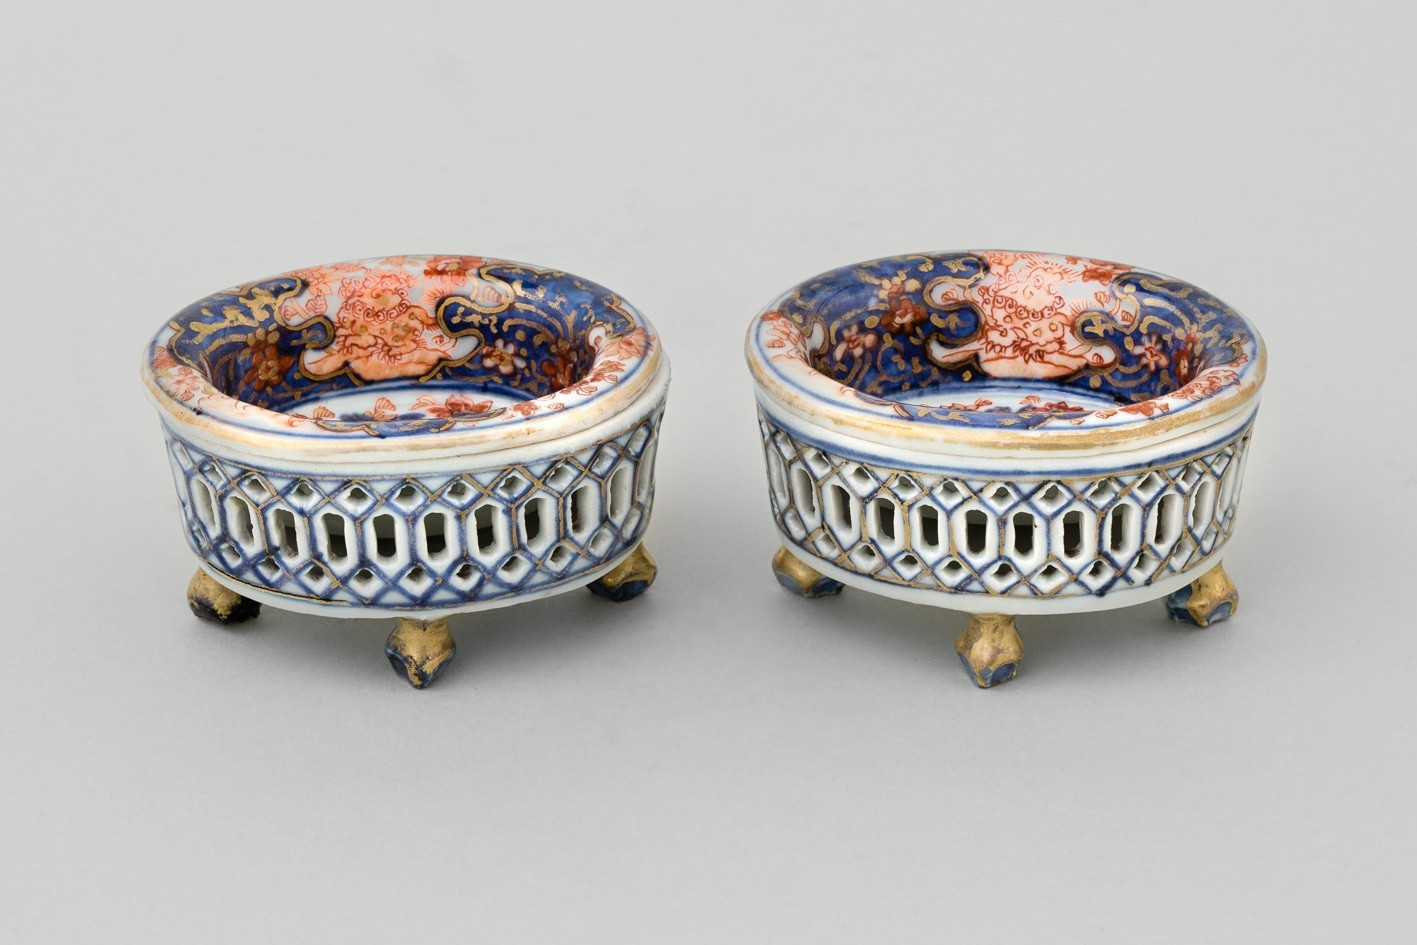 chinese vase with lid of a pair of reticulated chinese salts qianlong 1736 1795 anita gray for a pair of reticulated chinese salts